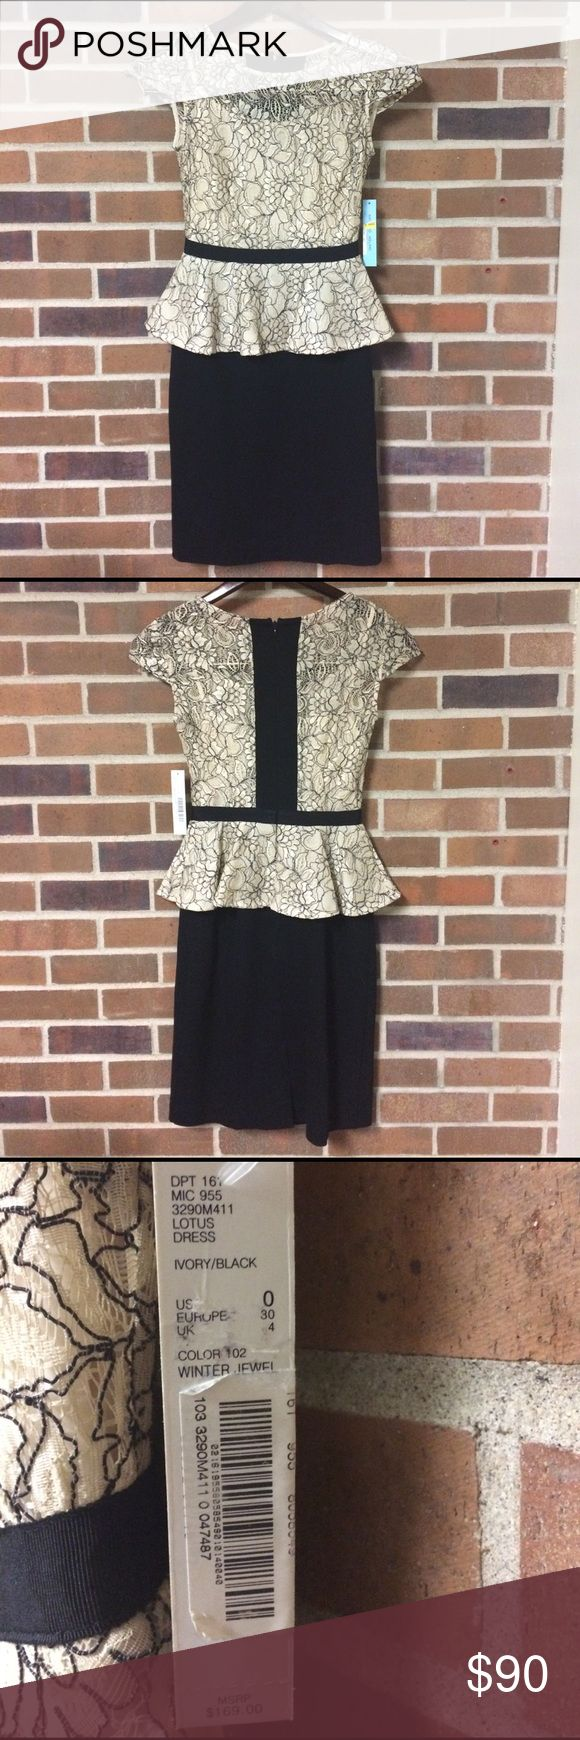 Antonio Melani Peplum Midi Dress Antonio Melani peplum dress new with tags. Clean and pristine! Cap sleeves, built-in liner, lace detail. Form fitting with knee length skirt. Comment with questions or for additional pictures! ANTONIO MELANI Dresses Midi